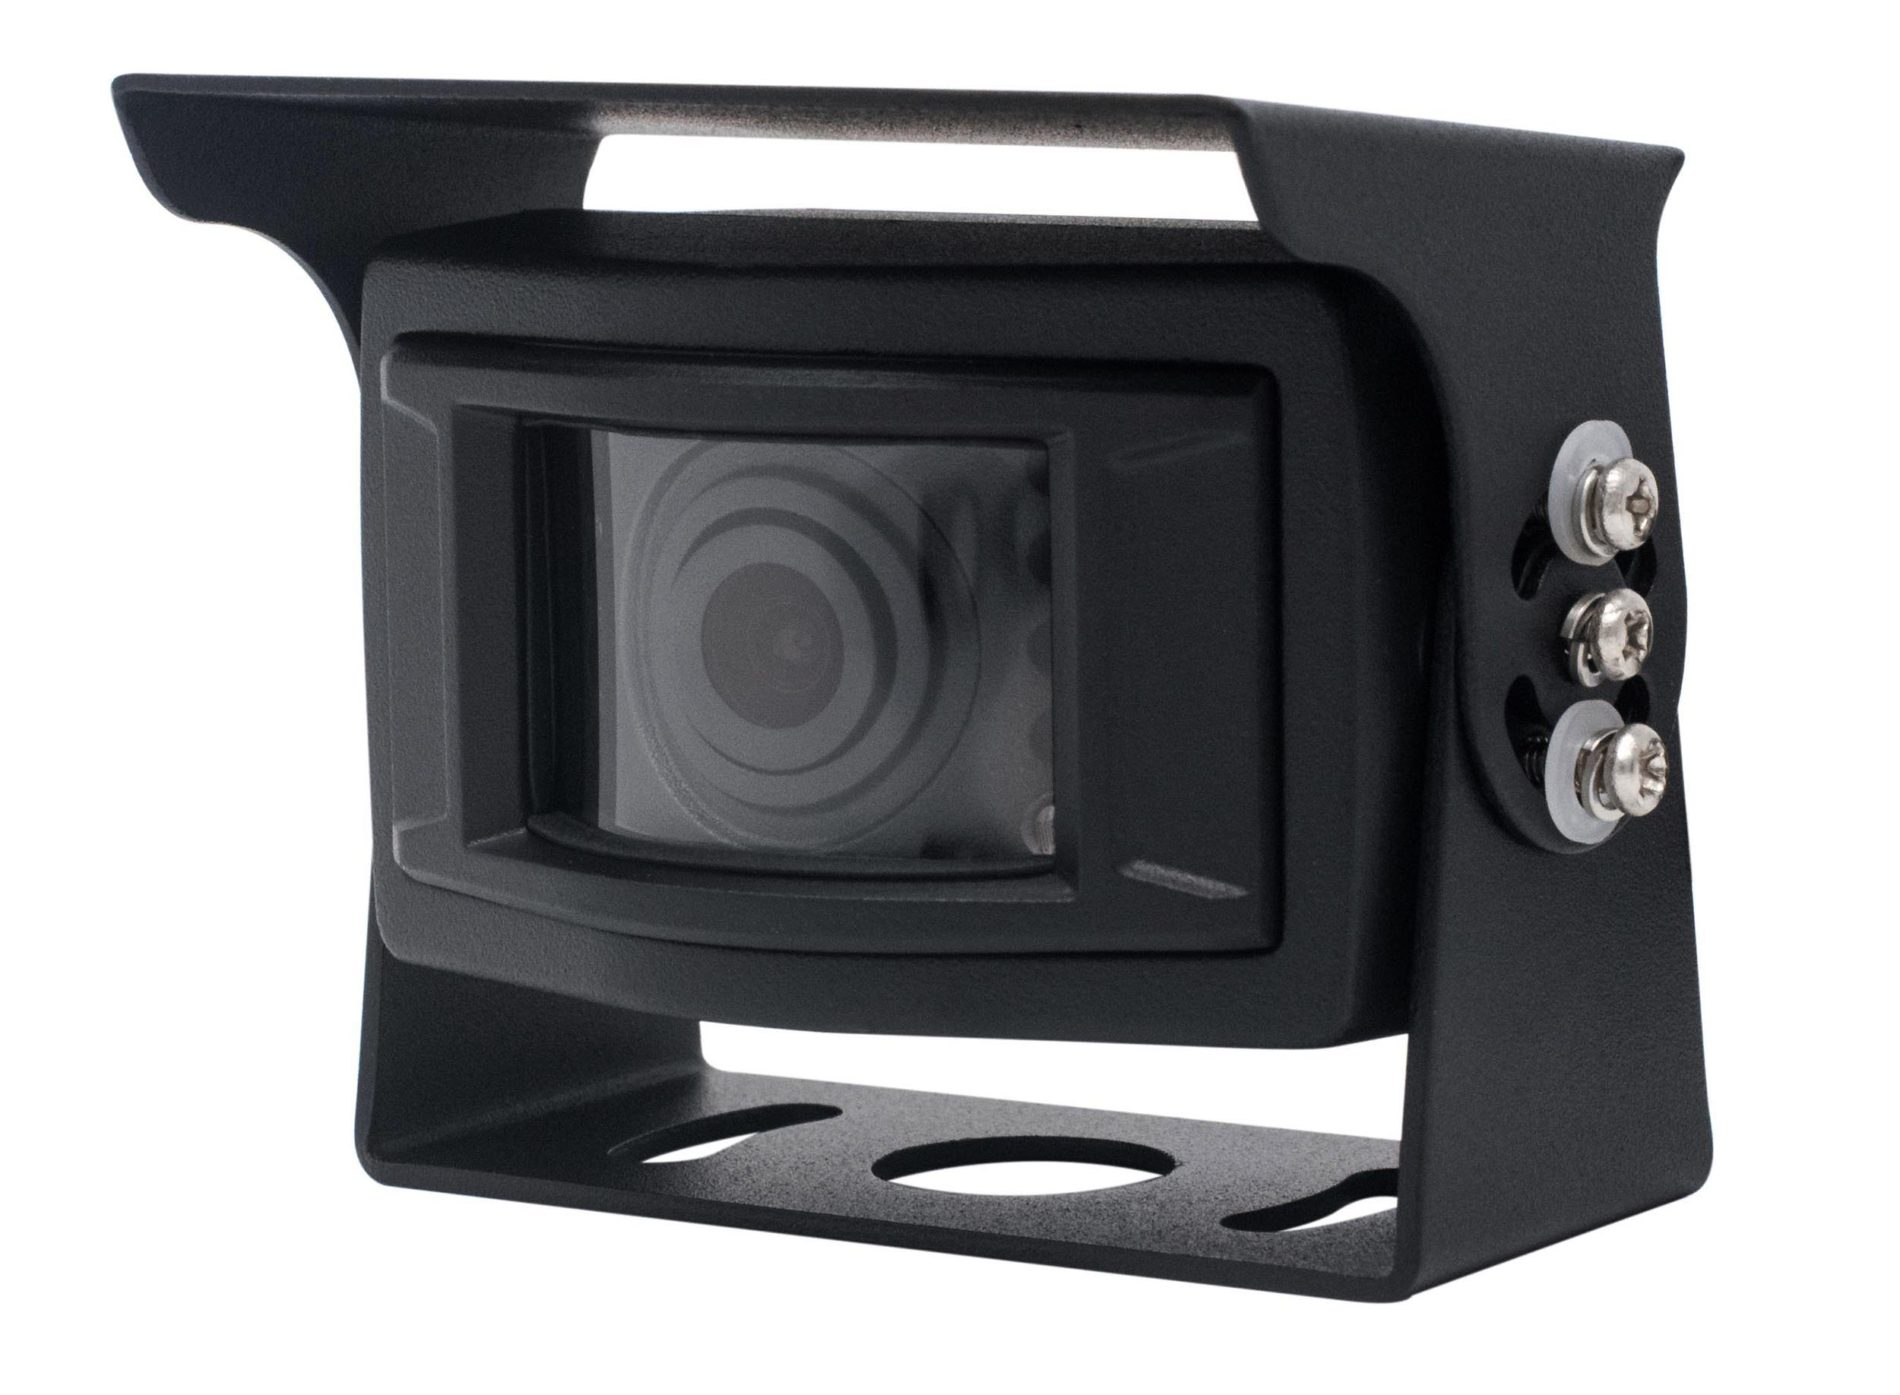 MC279 rear facing vehicle camera